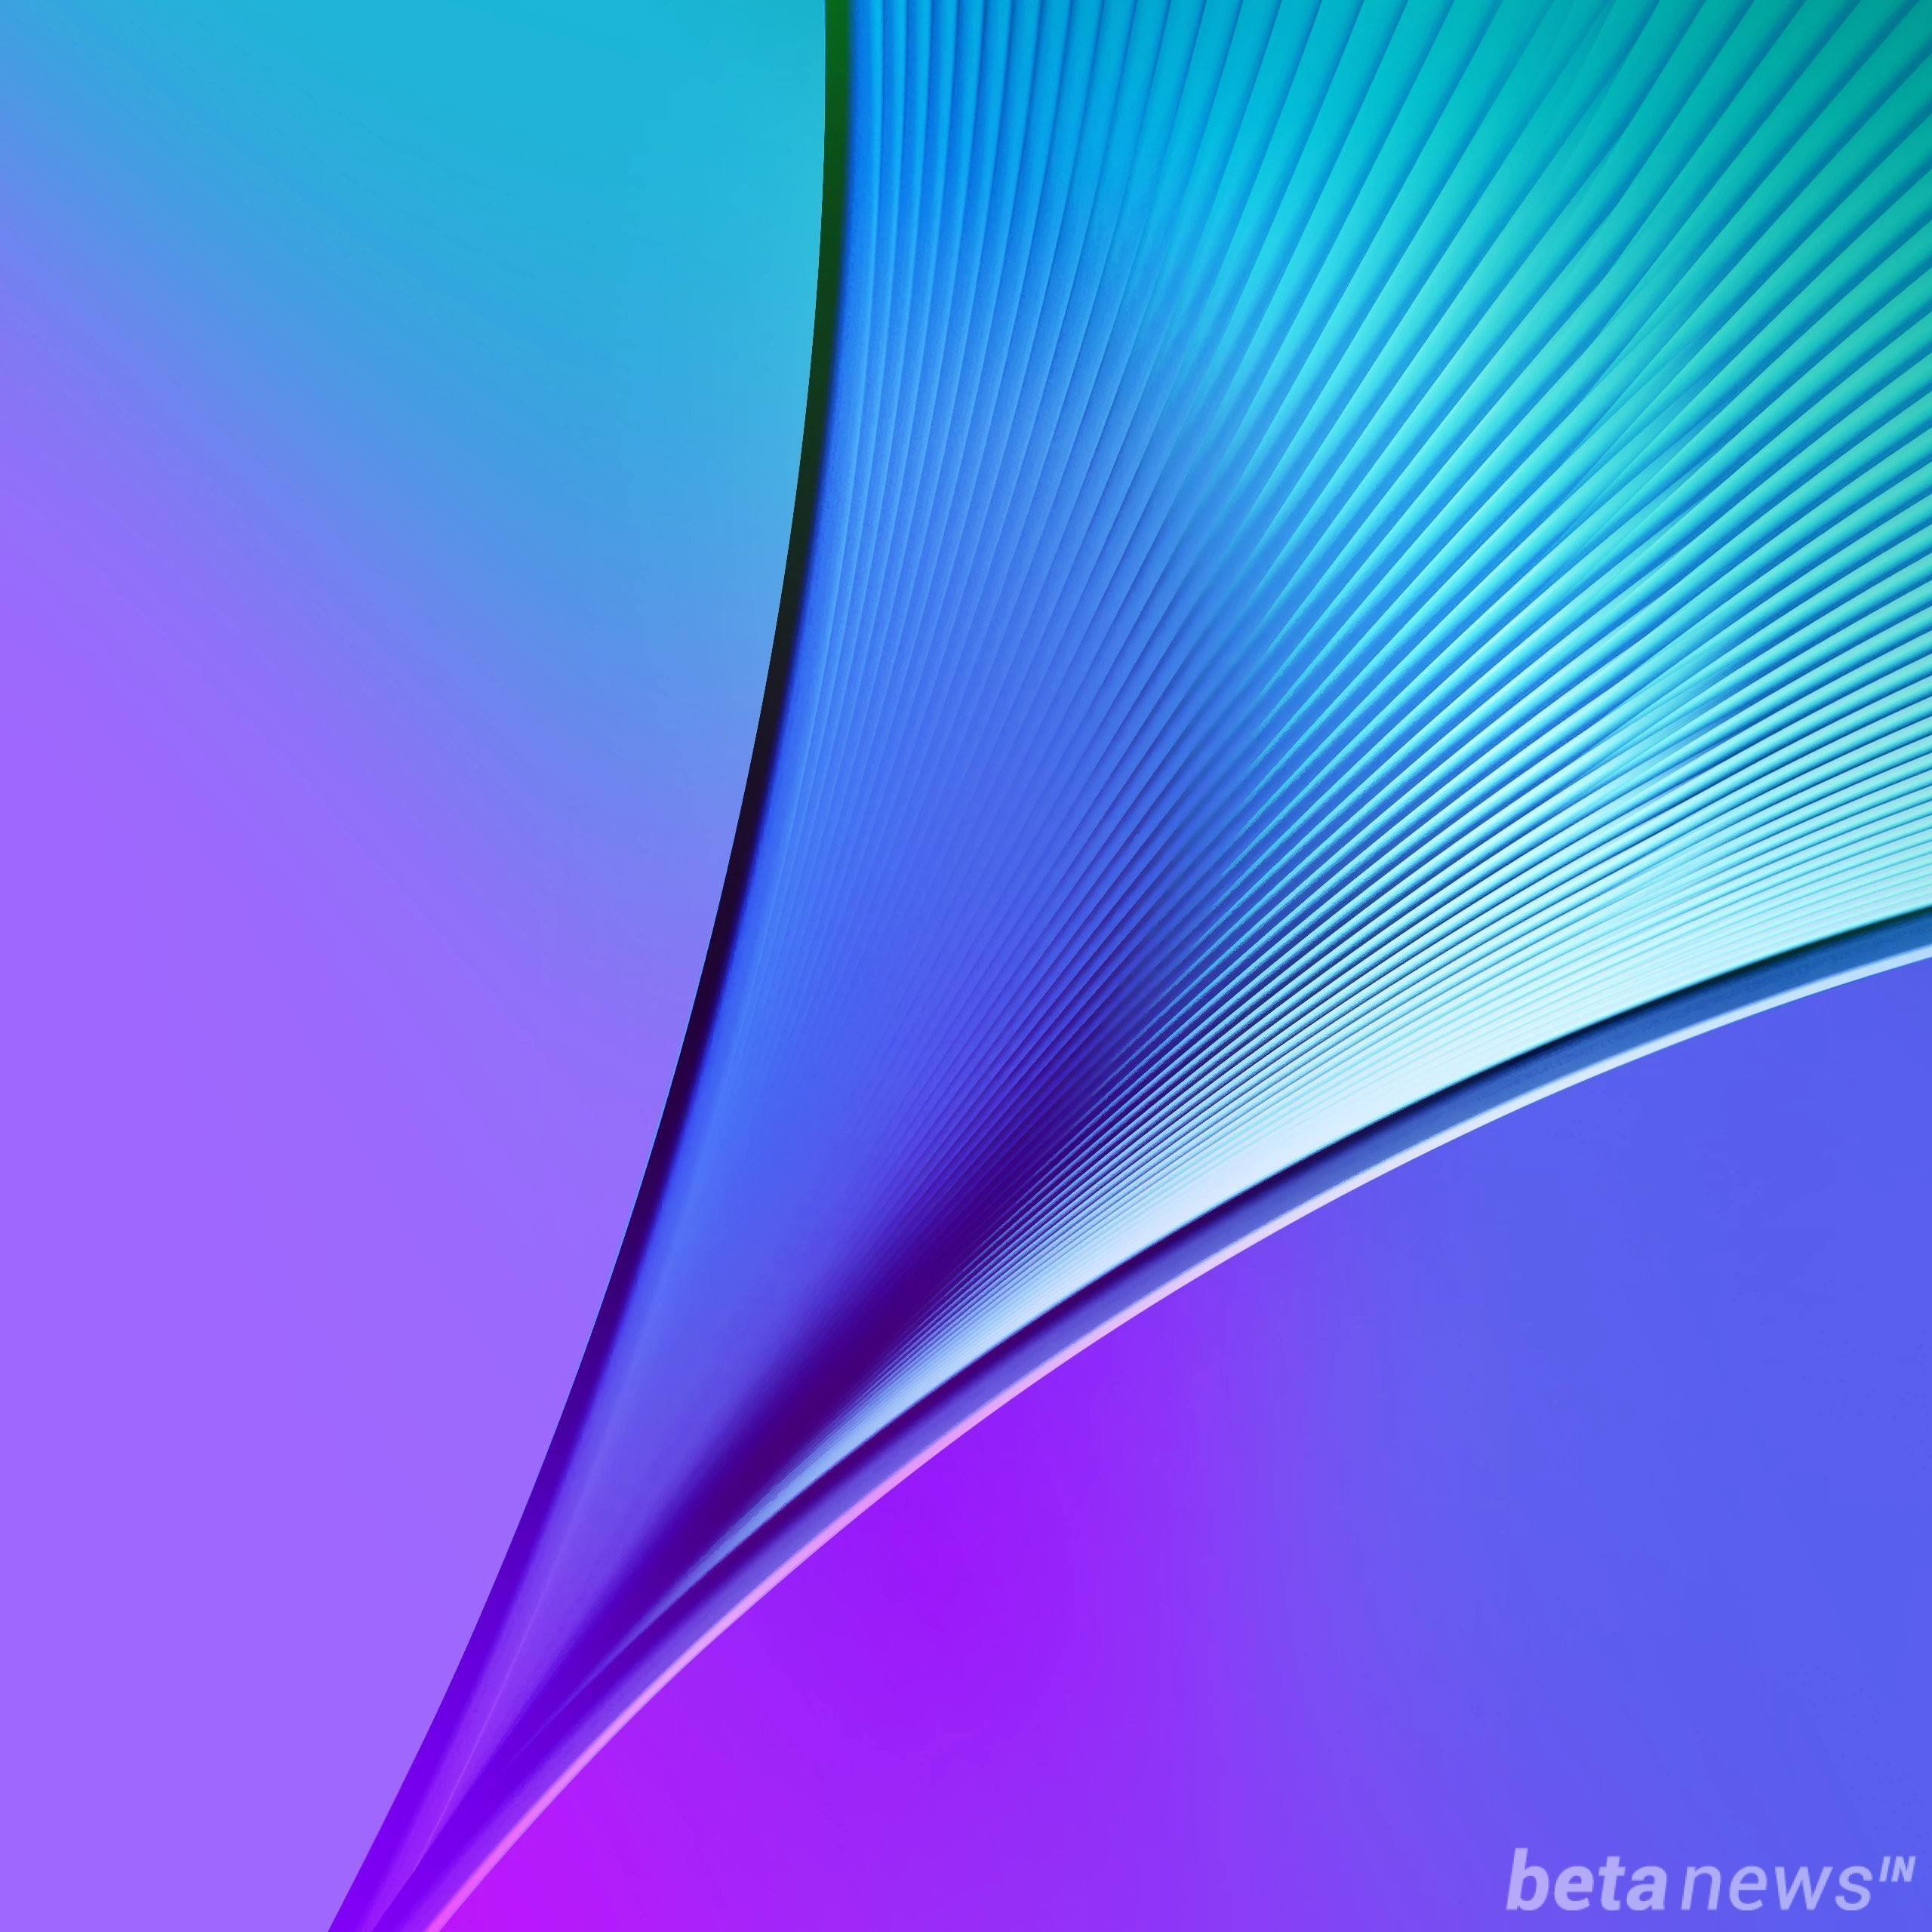 Galaxy Note Wallpapers Hd Galaxy Note 5 Wallpape...